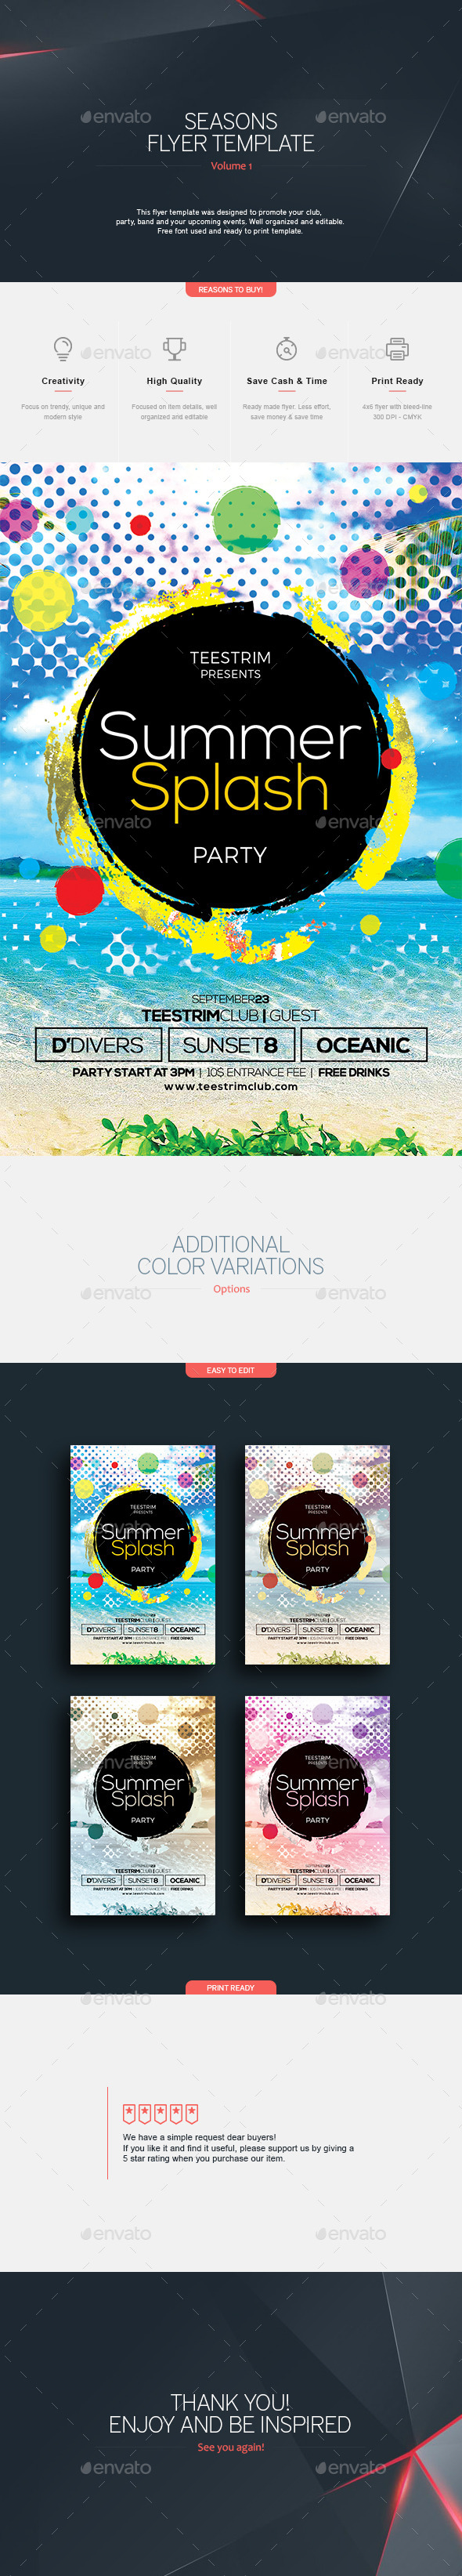 Summer Splash - Flyer Template - Clubs & Parties Events